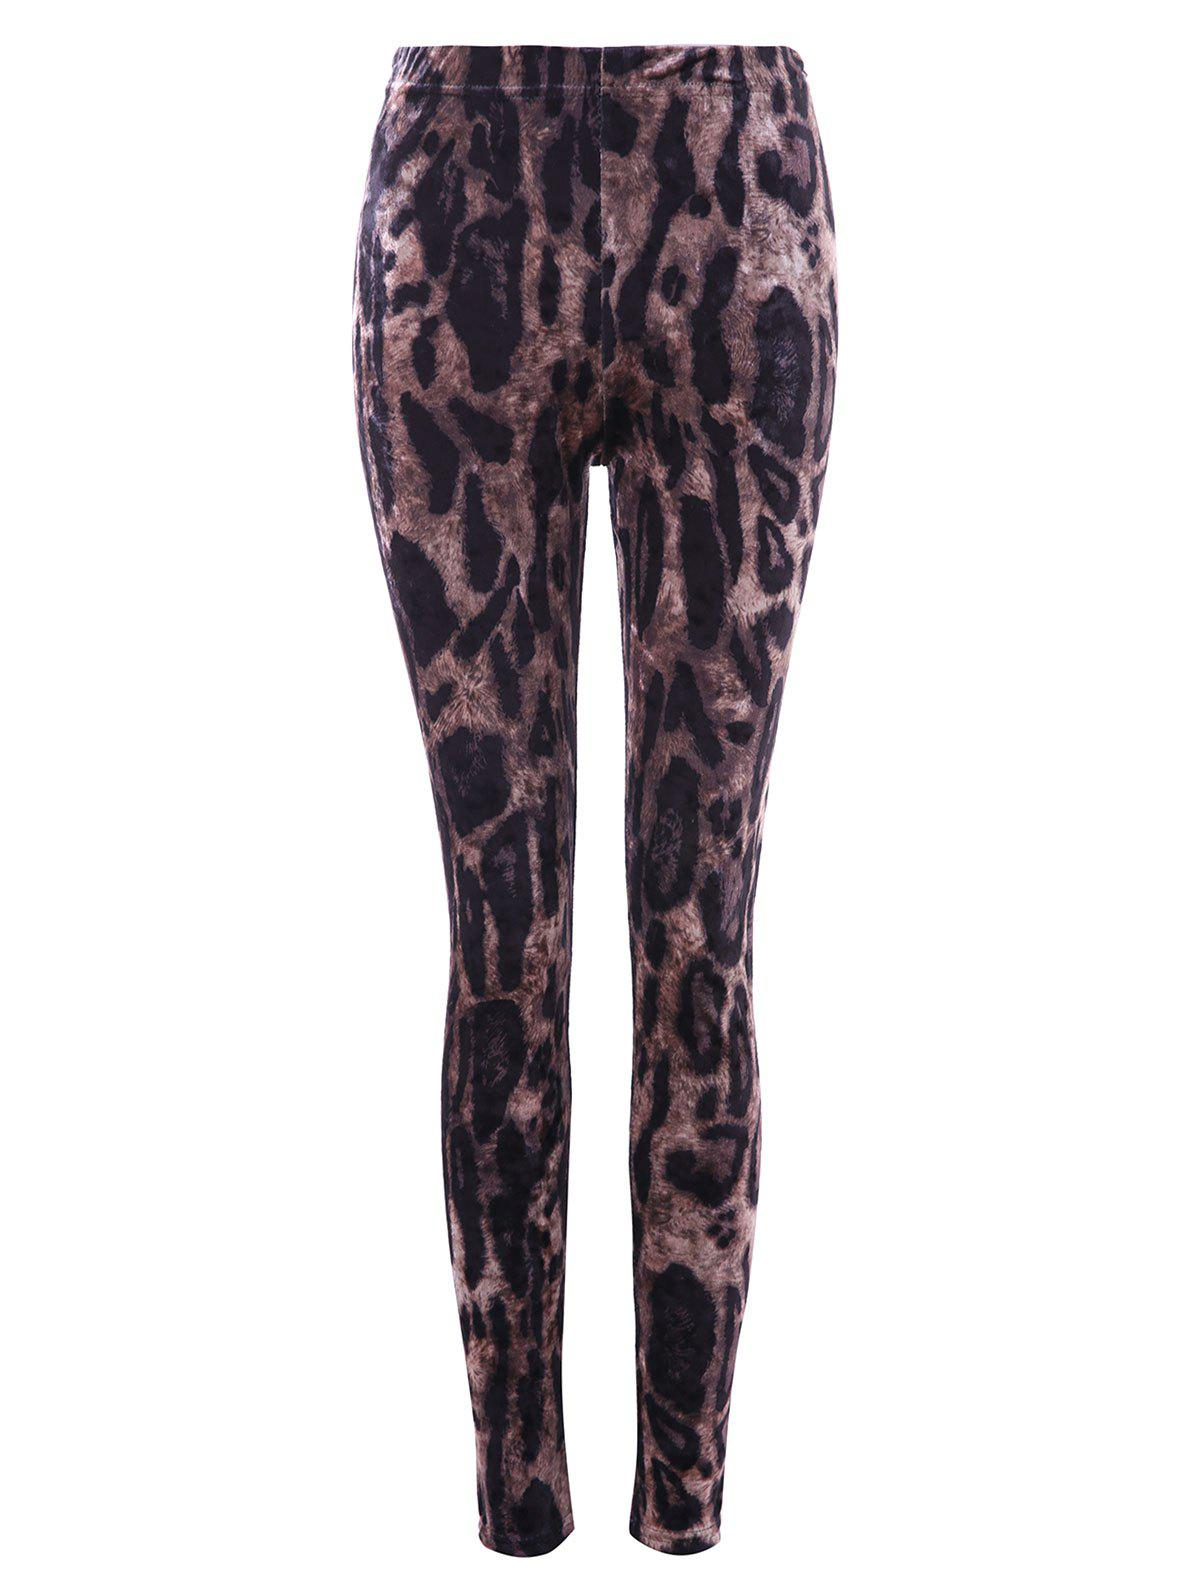 Online Leopard Print Velvet Pencil Pants